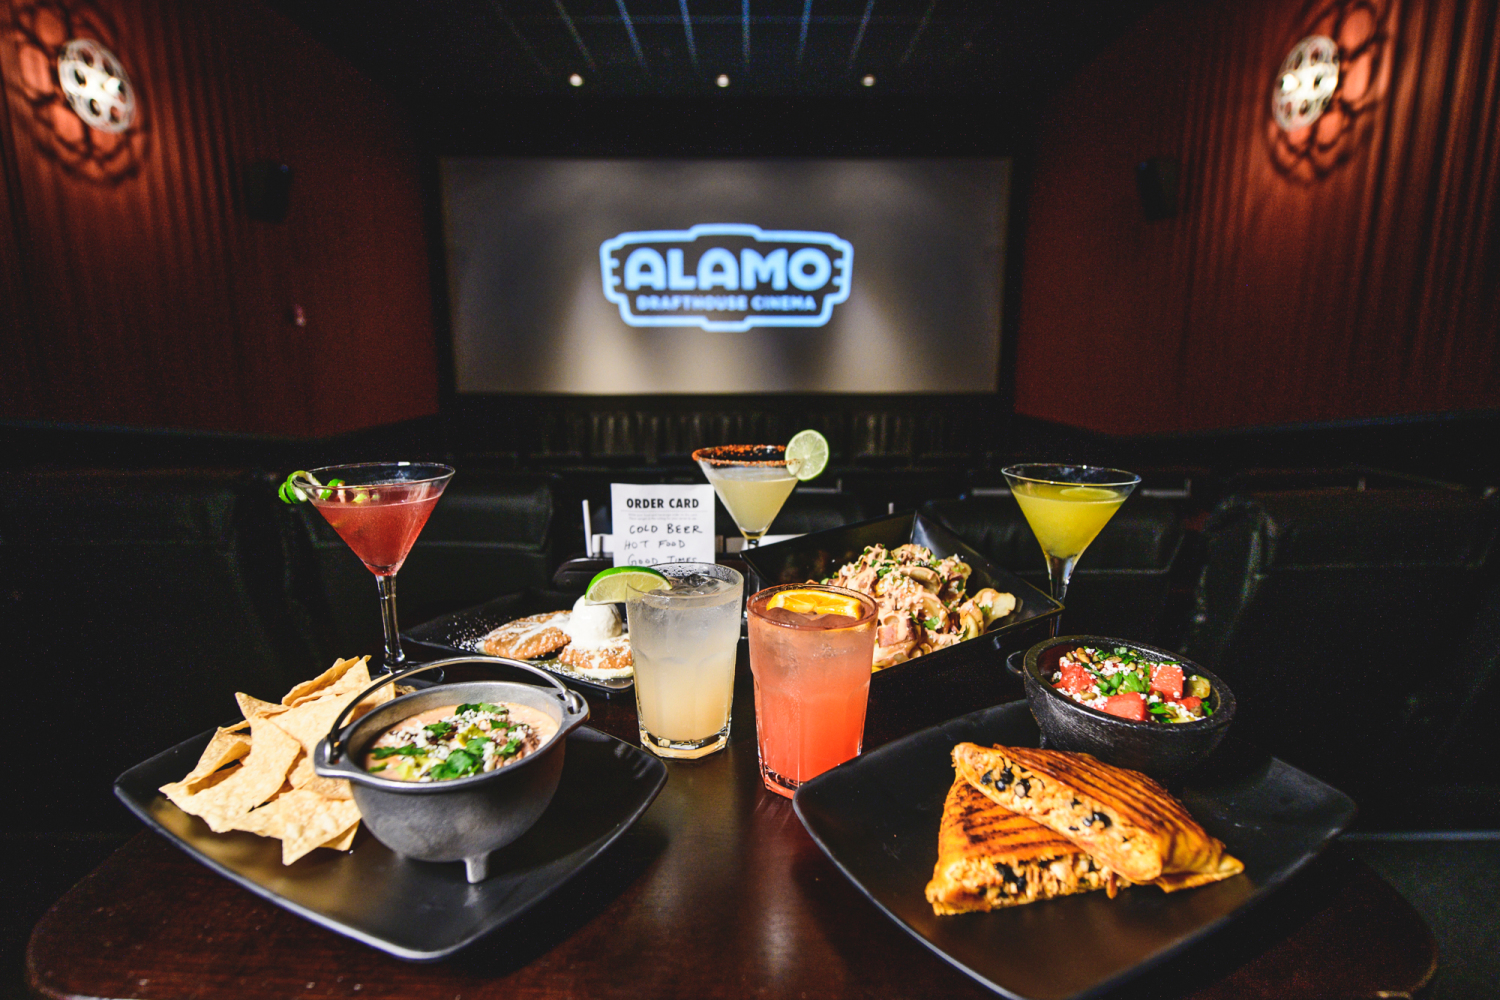 Several plates of food and alcoholic beverages sit on a table in an Alamo Drafthouse theater.